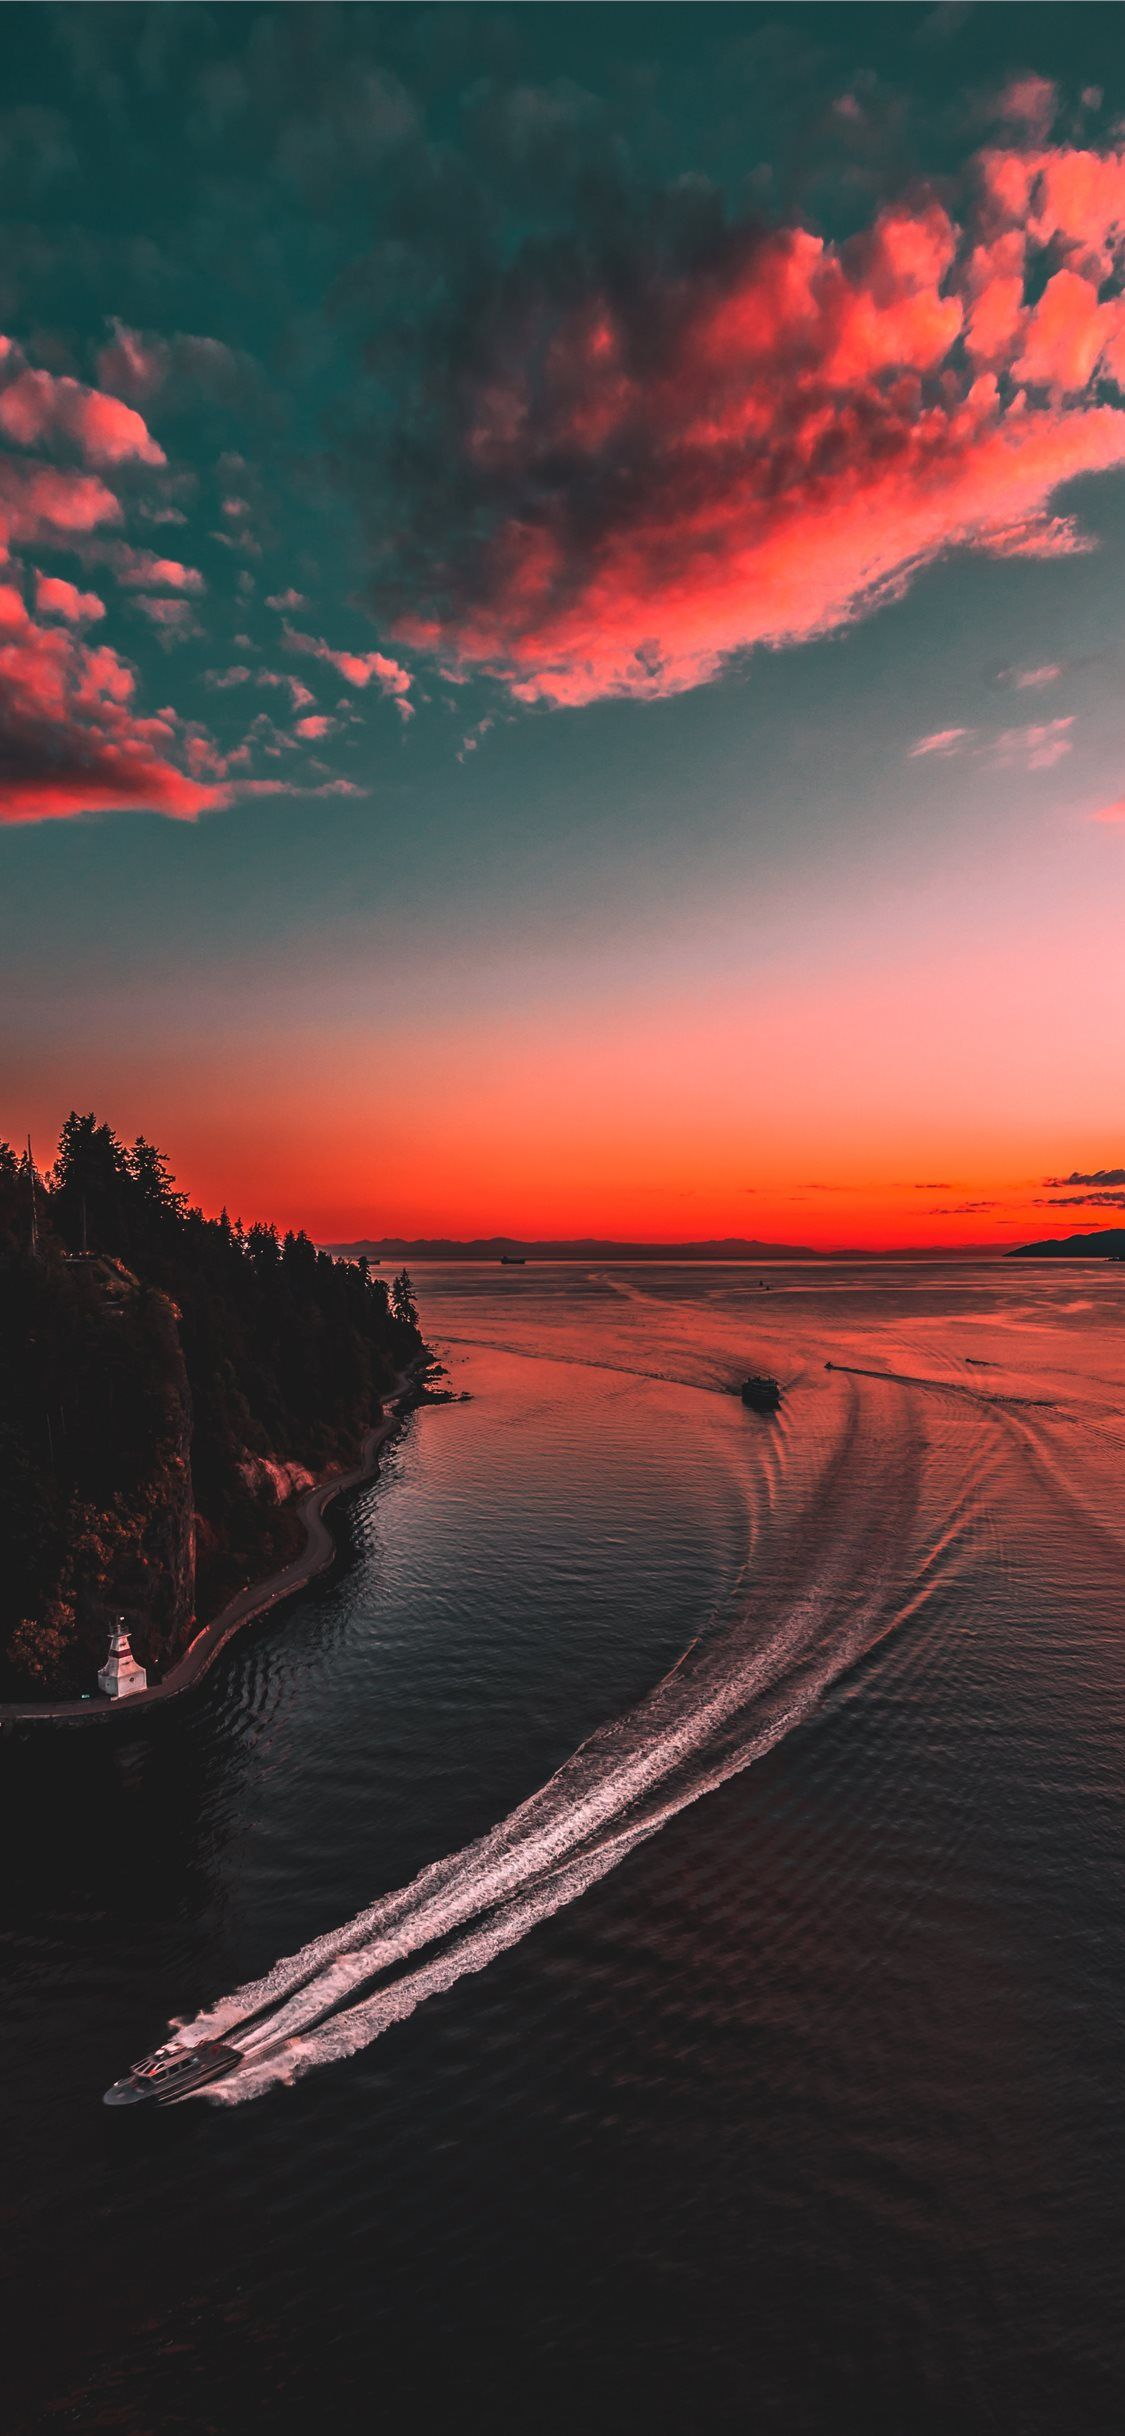 Jetski On Body Of Water Sky Nature Sunset Landscape Vancouver Canada Iphone11wallpaper In 2020 Sunset Wallpaper Iphone Wallpaper Images 4k Background